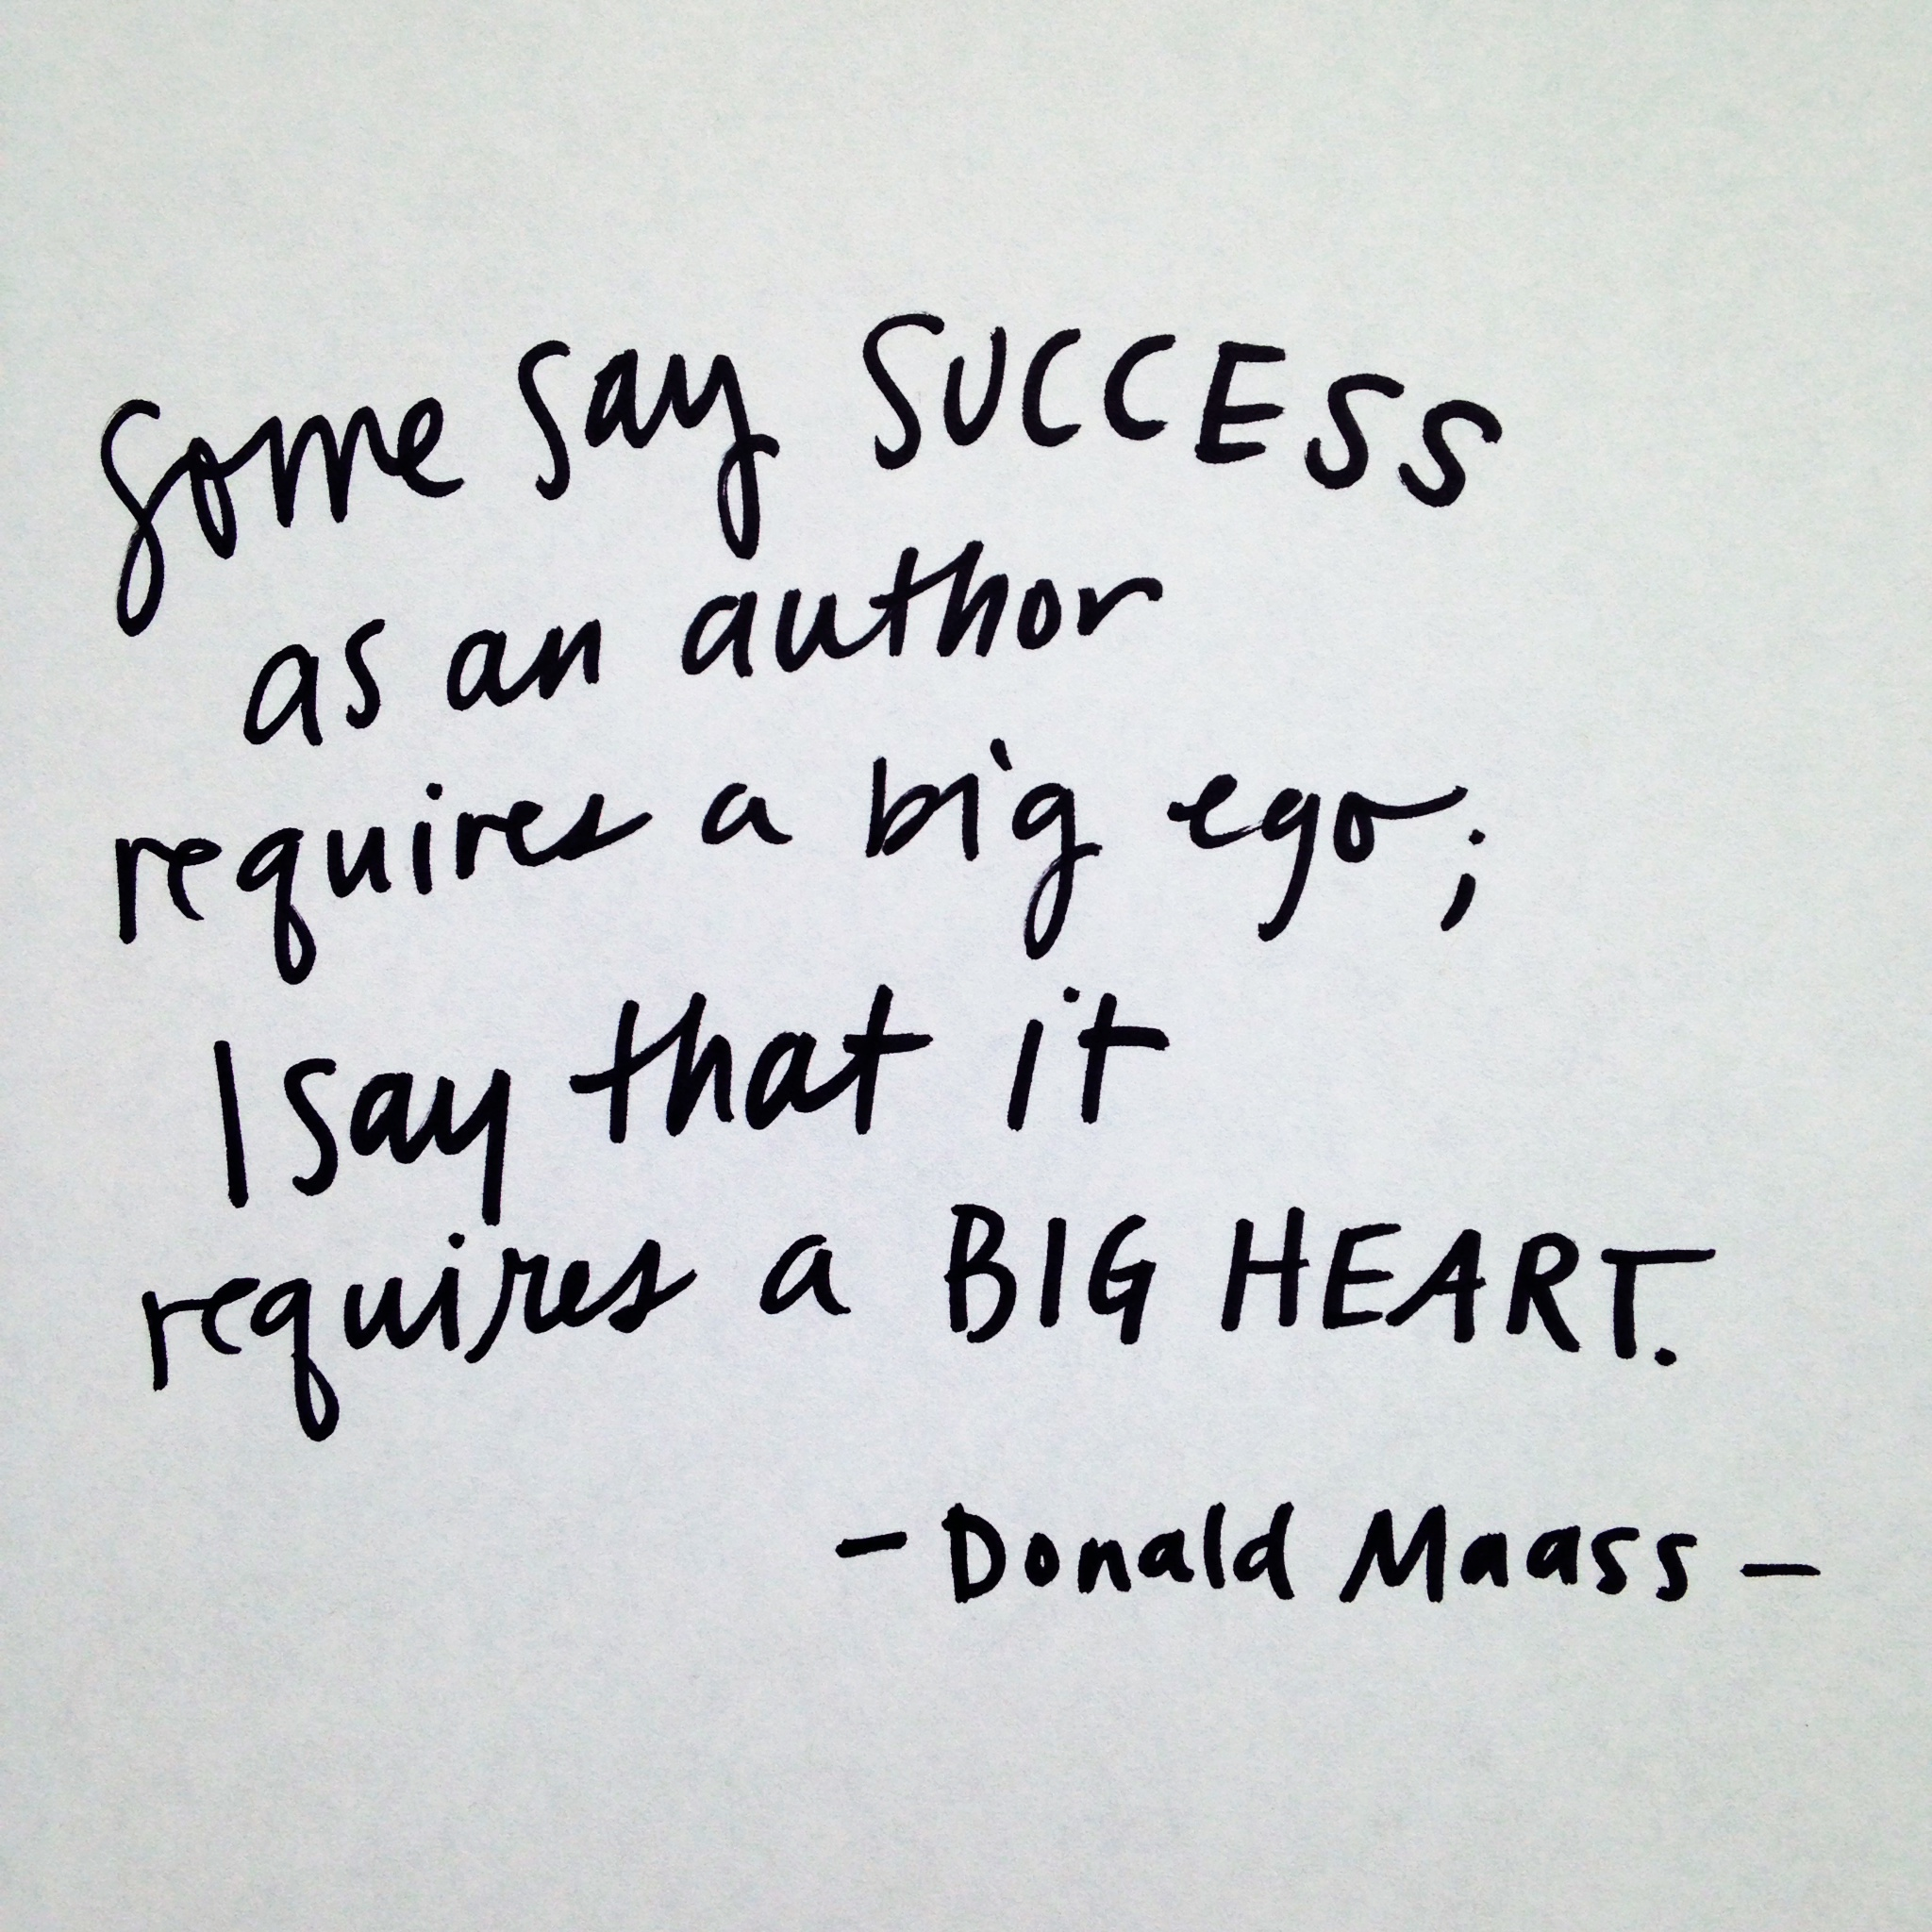 Donald Maass says, Success as an author requires a big heart. | How to Live with Humans and Still Write, on lucyflint.com